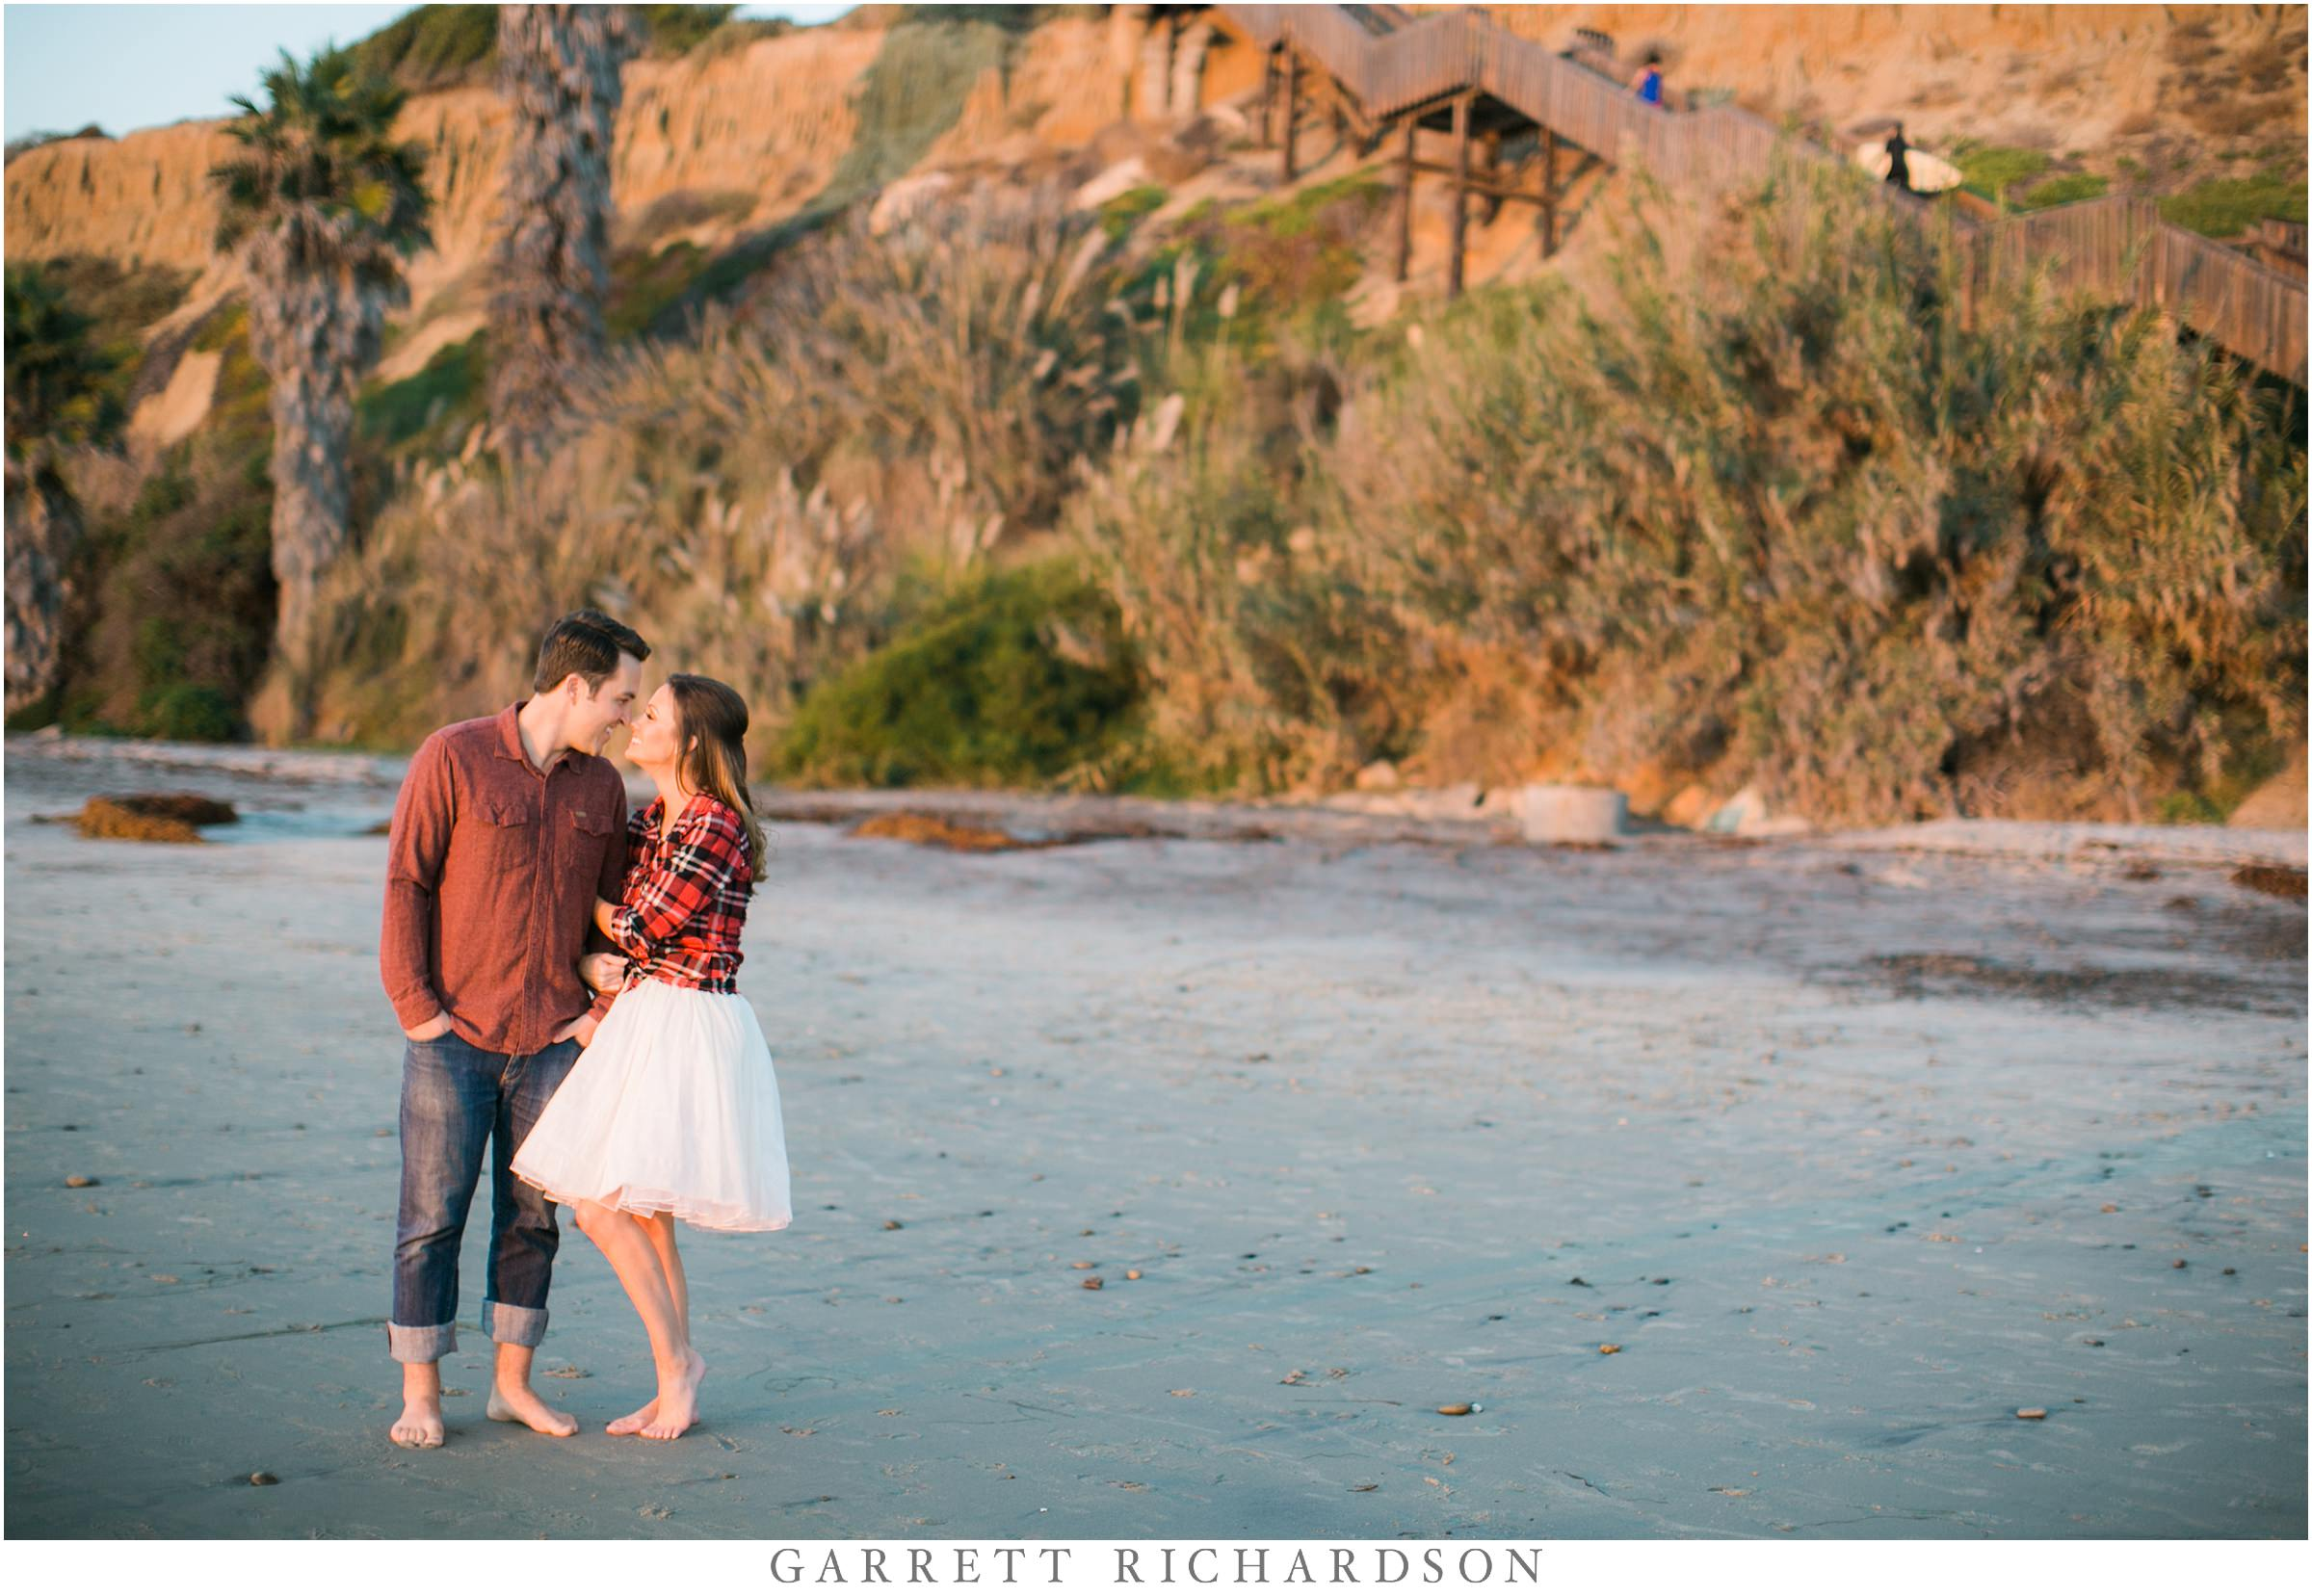 photographer, best wedding photography, san diego photography, wedding photography blog, wedding photos, southern california, wedding, wedding photographer, cardiff by the sea, cardiff engagement session, beach photographer, engagement session, beach, ocean, cardiff, water, Photography, photographer, san diego photographer, ocean photography, nature, nature photographer, ocean engagement session, sea, pacific ocean, beach engagement session